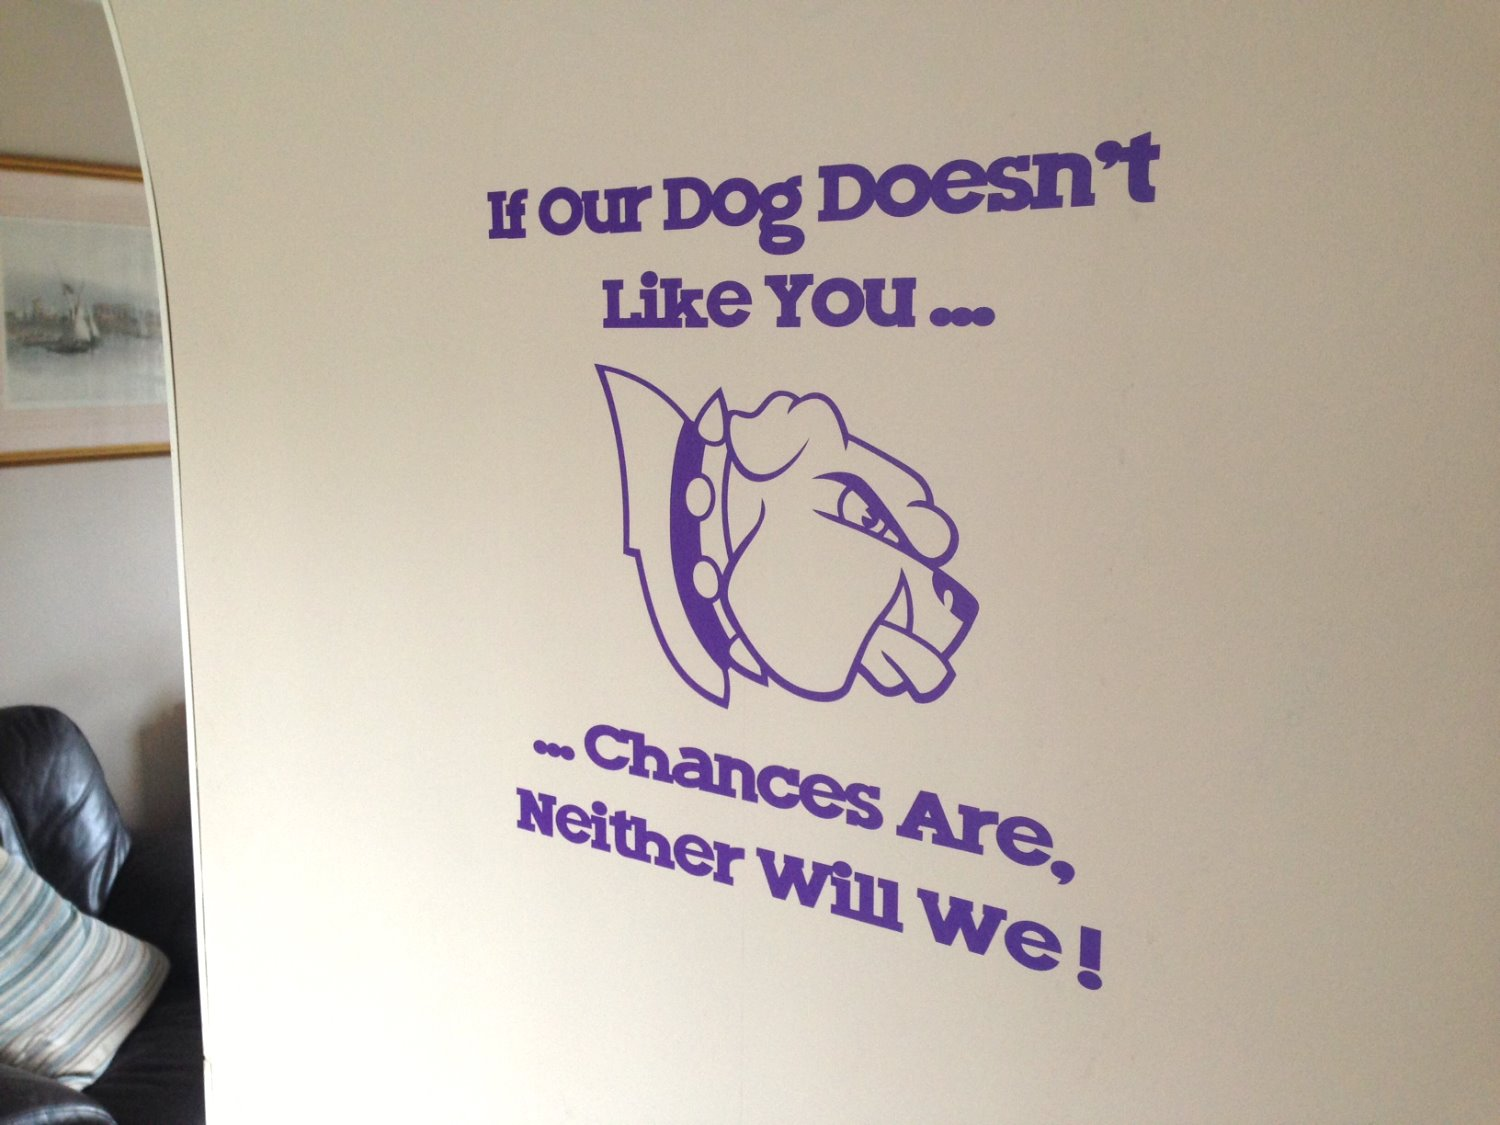 If our dog doesn't like you ...